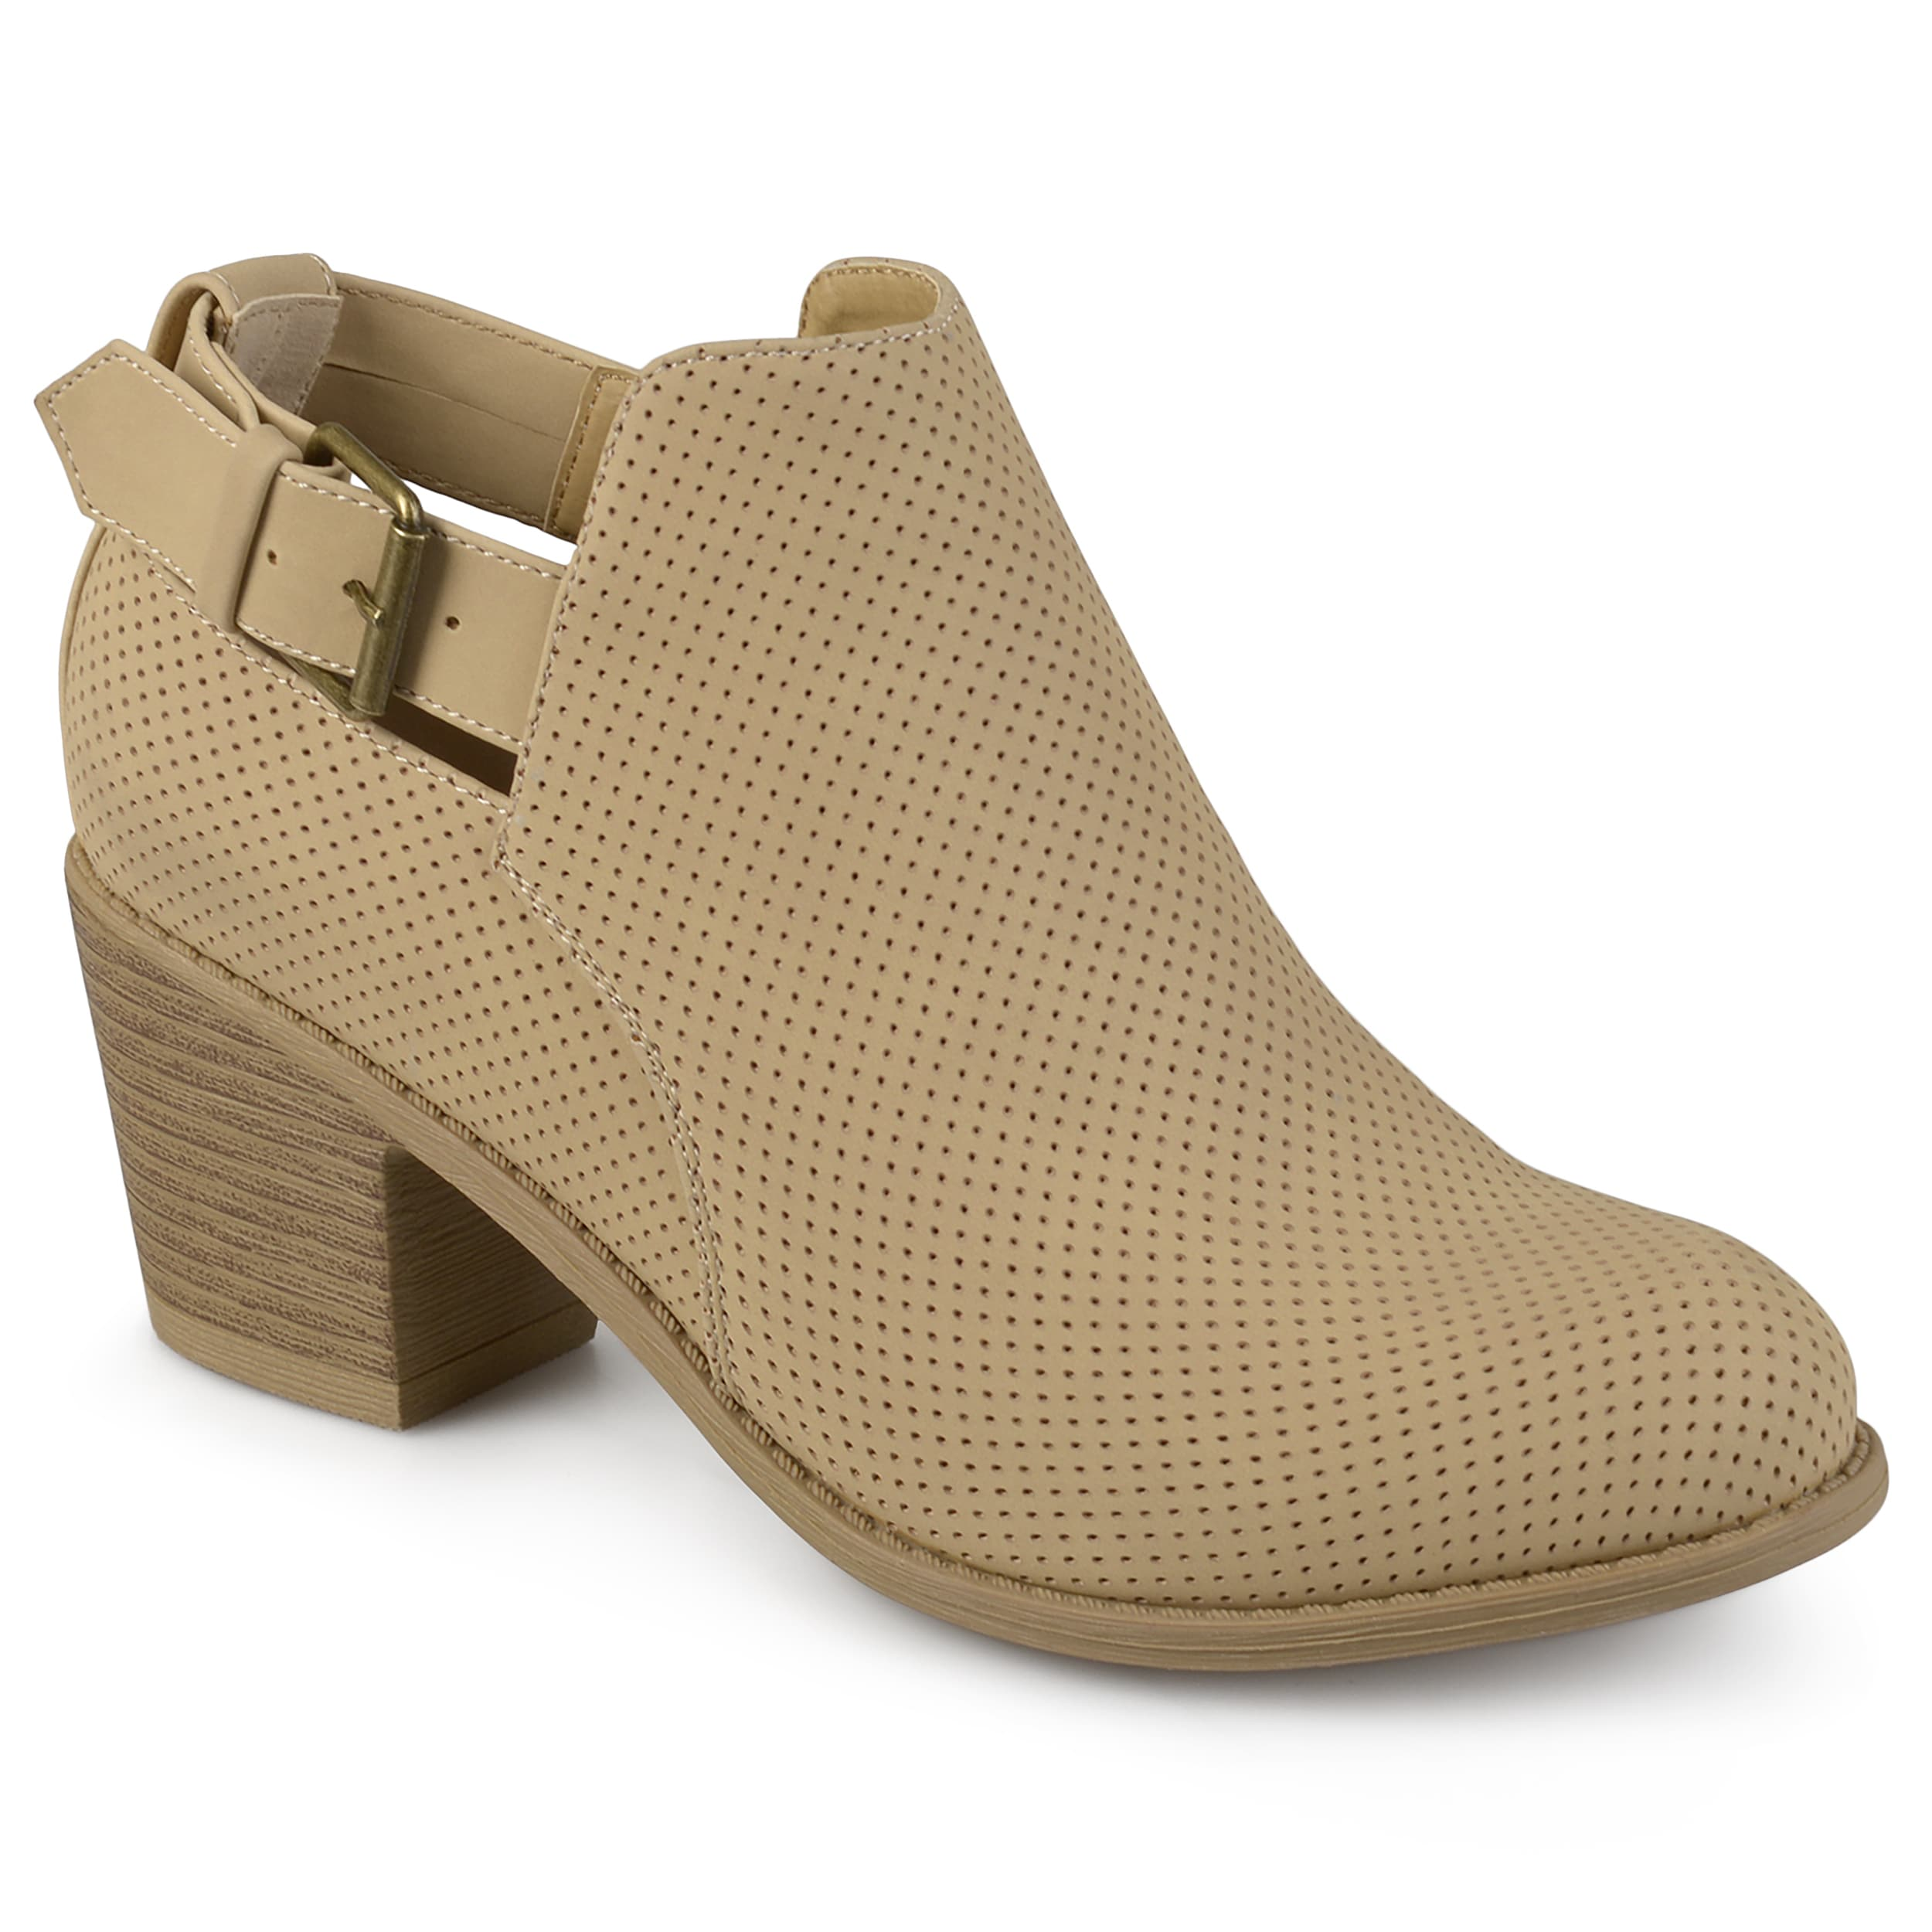 Journee Collection Averi ... Women's Ankle Boots online cheap quality 425Onqhq